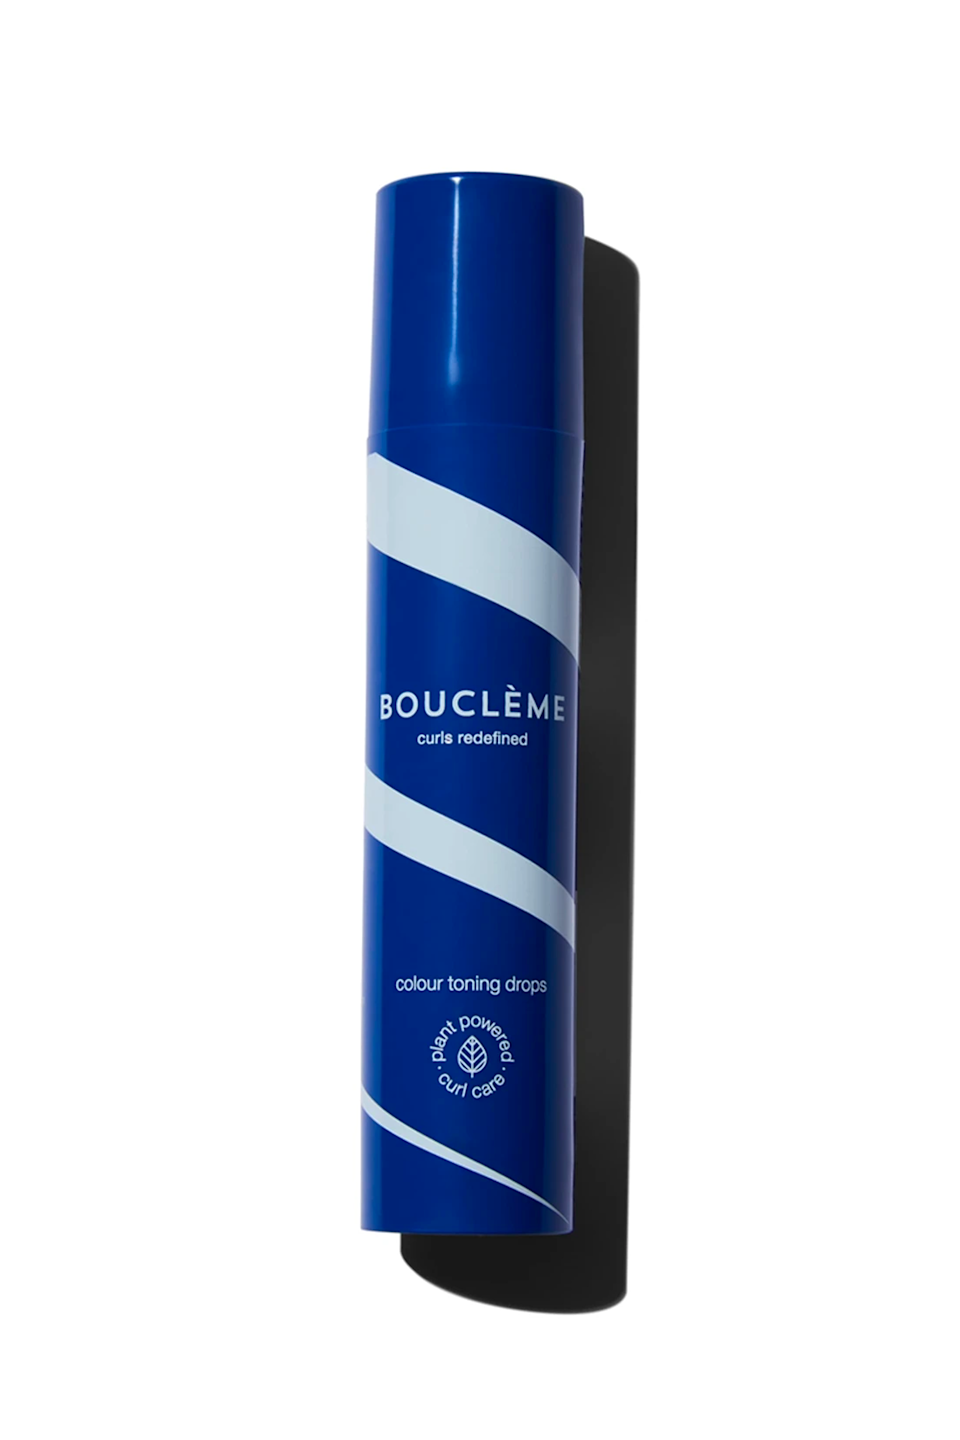 """<p>boucleme.us</p><p><strong>$36.00</strong></p><p><a href=""""https://boucleme.us/collections/bestsellers-hidden/products/colour-toning-drops"""" rel=""""nofollow noopener"""" target=""""_blank"""" data-ylk=""""slk:Shop Now"""" class=""""link rapid-noclick-resp"""">Shop Now</a></p><p>The coolest thing about these toning drops from Bouclème is that you can easily mix them into your favorite <a href=""""https://www.cosmopolitan.com/style-beauty/beauty/news/a56230/co-washing-benefits/"""" rel=""""nofollow noopener"""" target=""""_blank"""" data-ylk=""""slk:co-wash"""" class=""""link rapid-noclick-resp"""">co-wash</a> or cleanser—no need to add any harsh or drying products into your existing curl routine. They're super versatile too: The deep indigo hues swimming around in the formula <strong>gently cancel out brass in brunette, blonde, <em>or</em> <a href=""""https://www.cosmopolitan.com/style-beauty/beauty/g28903536/balayage-dark-brown-hair/"""" rel=""""nofollow noopener"""" target=""""_blank"""" data-ylk=""""slk:balayage hair"""" class=""""link rapid-noclick-resp"""">balayage hair</a> colors</strong>.</p>"""